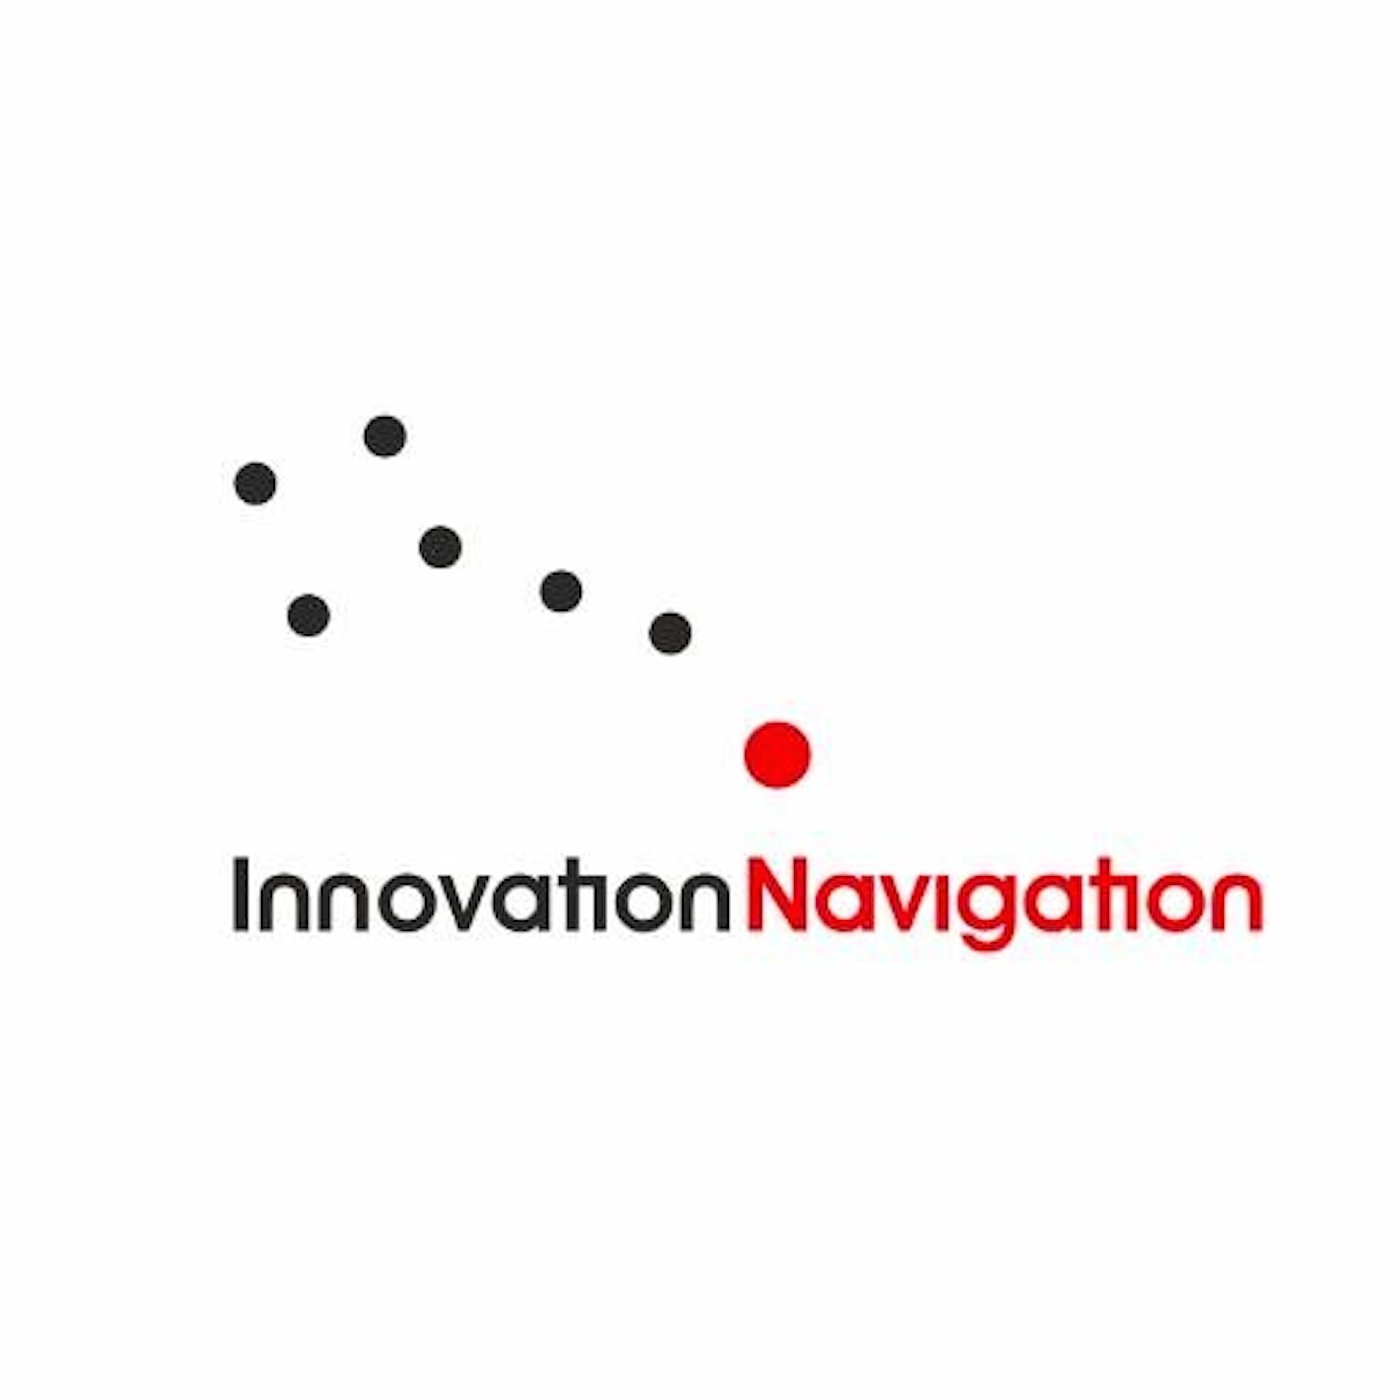 Episode 25 - Innovation Navigation at the New York International Auto Show